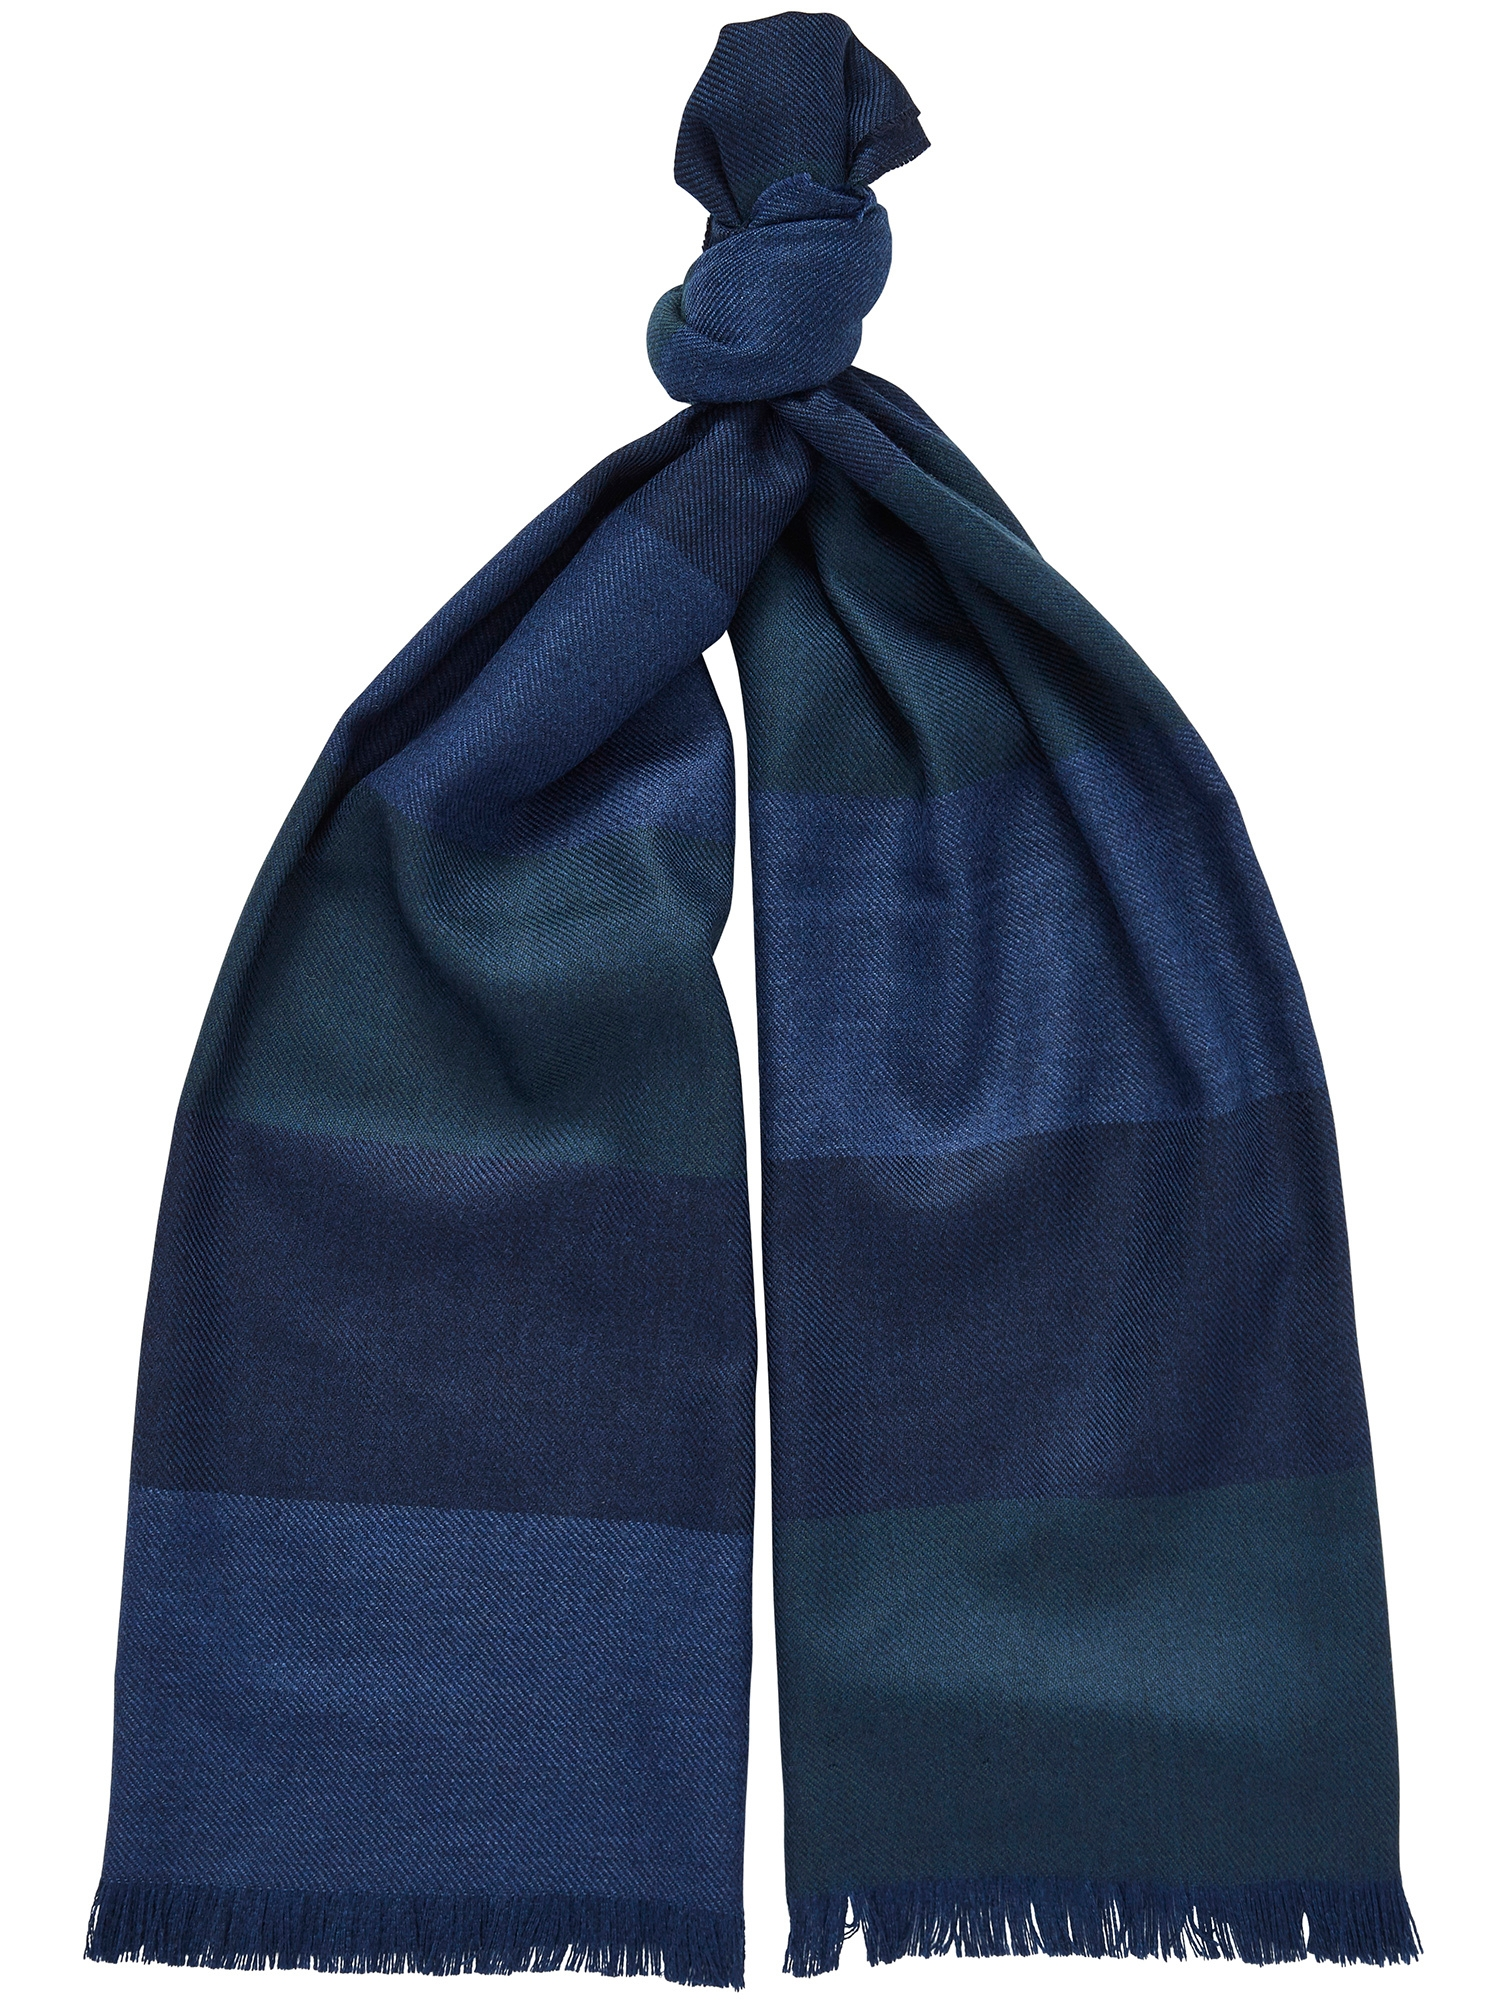 CHESTER BARRIE LAMBSWOOL COLOUR BLOCK SCARF